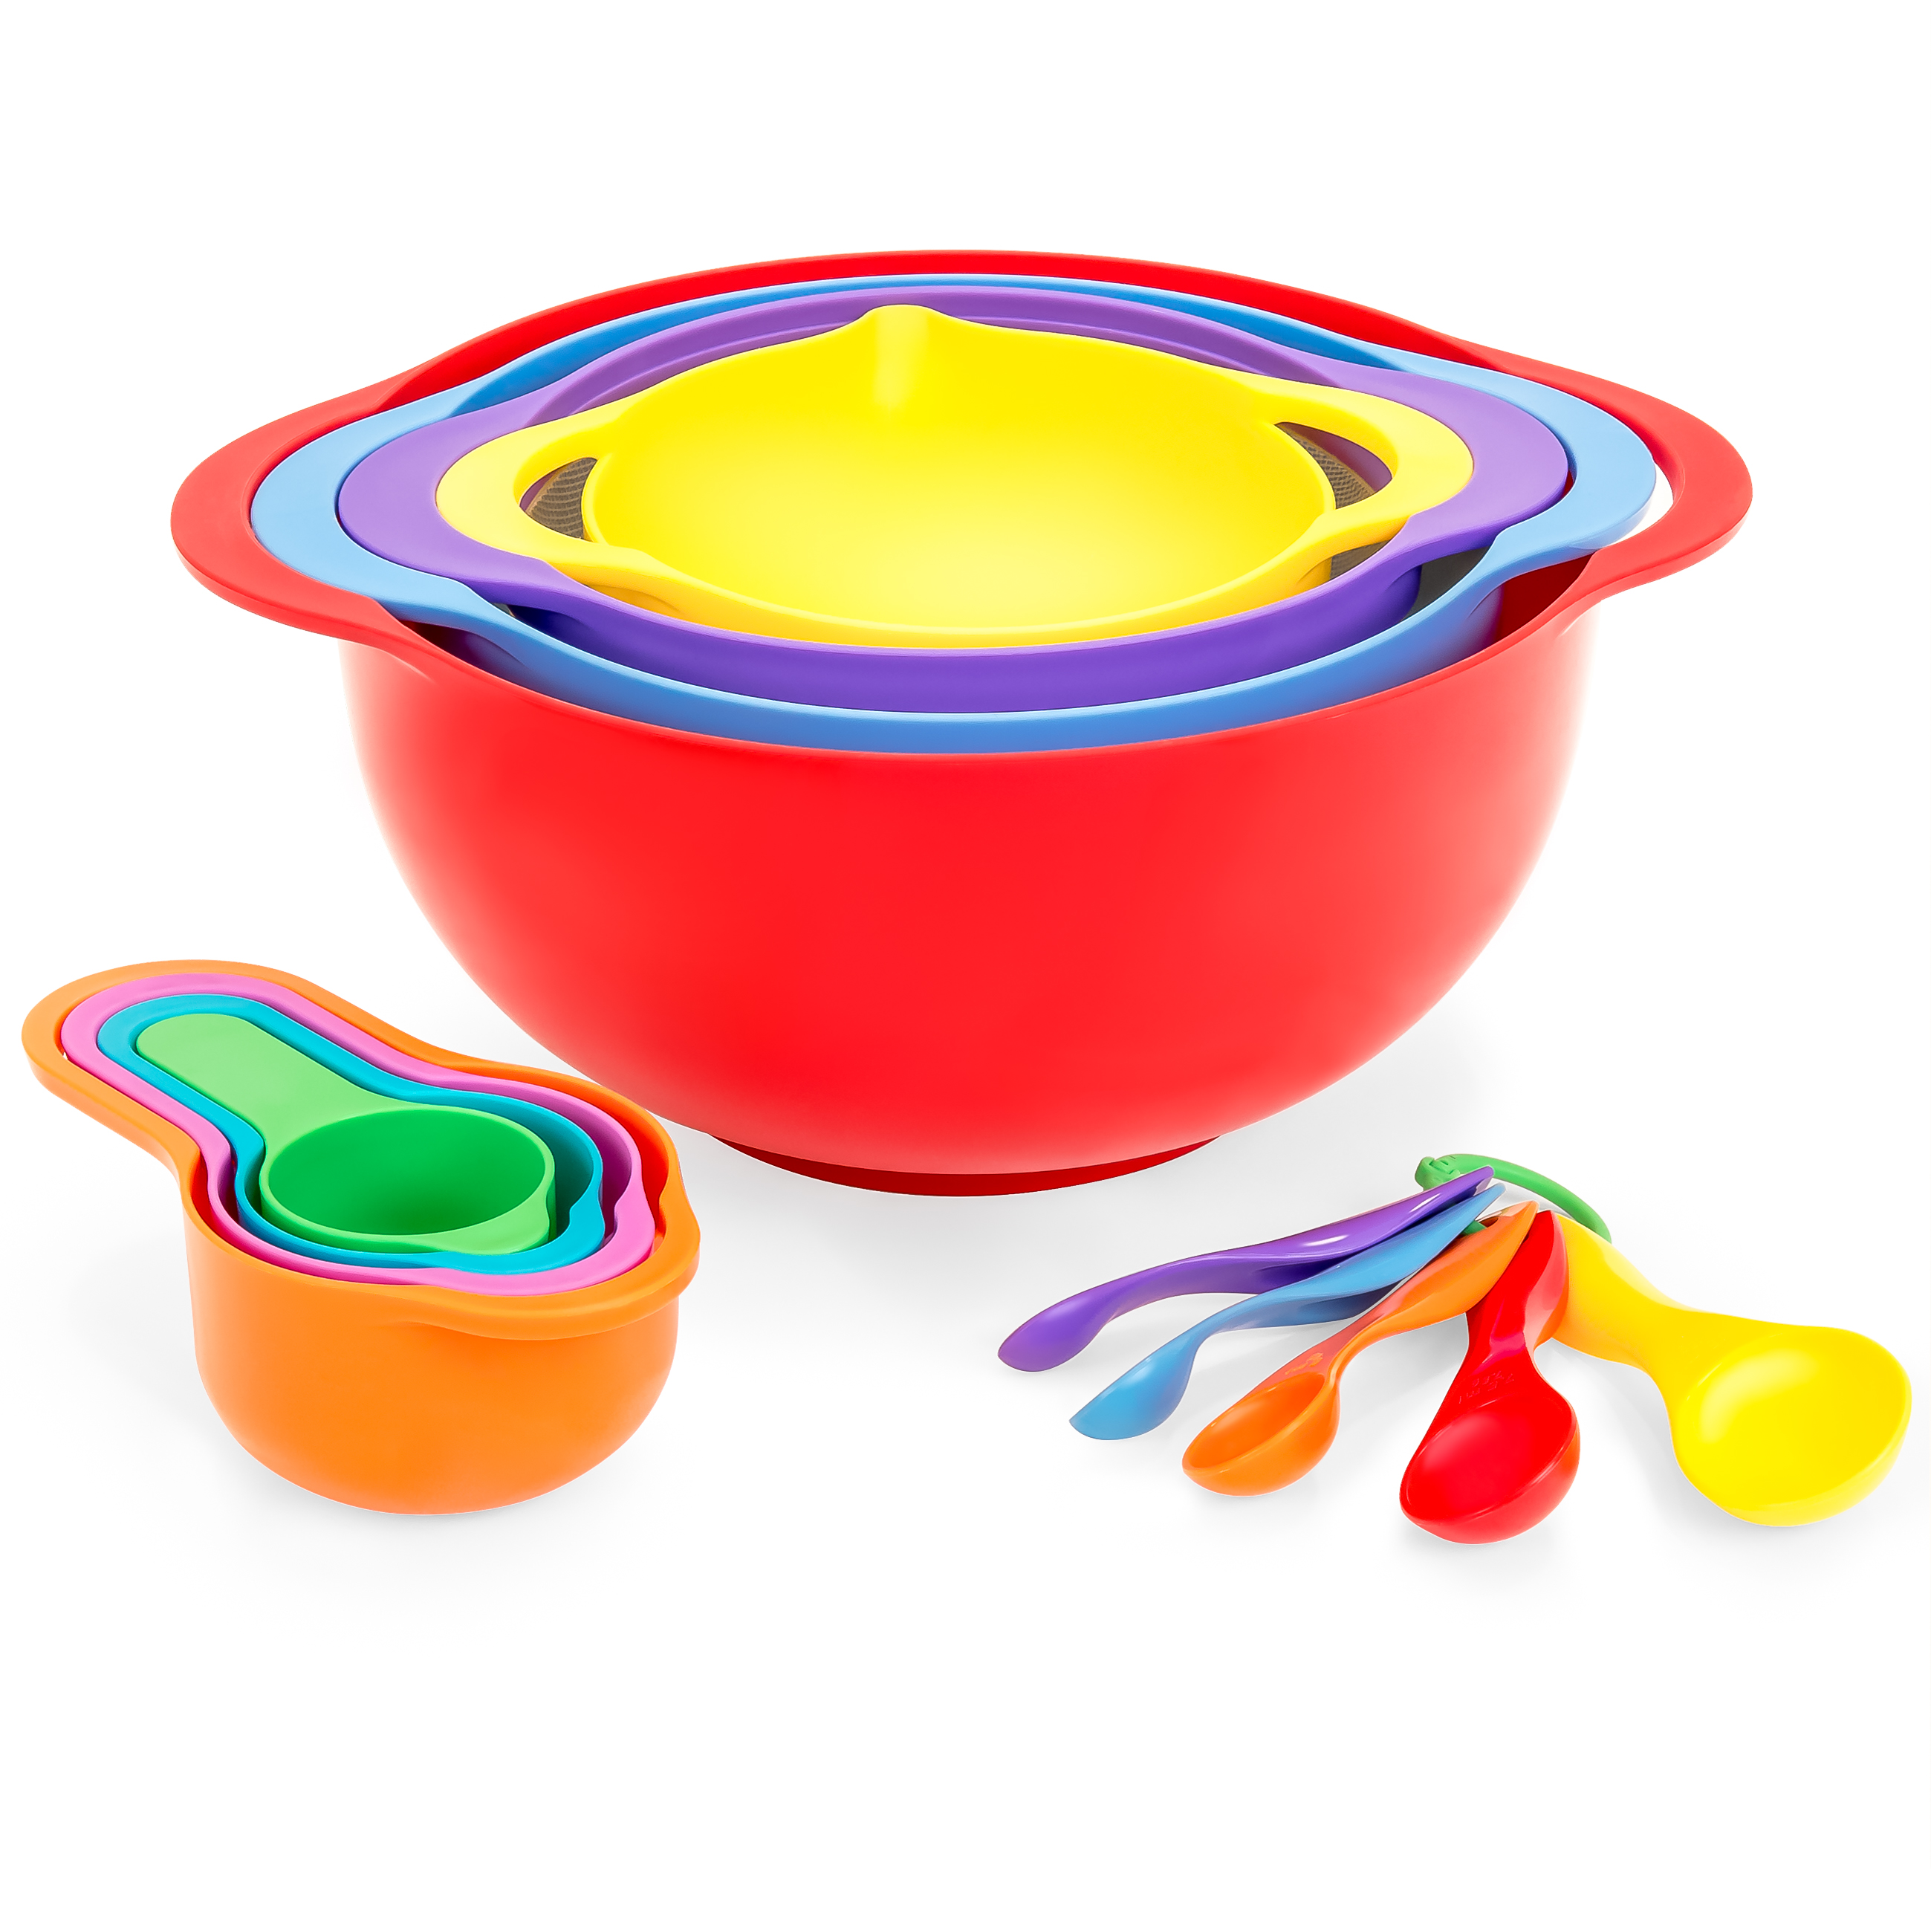 Best Choice Products 13-Piece BPA-Free Mixing Bowl Set w/ Stackable Measuring Cups & Colander - Multicolor